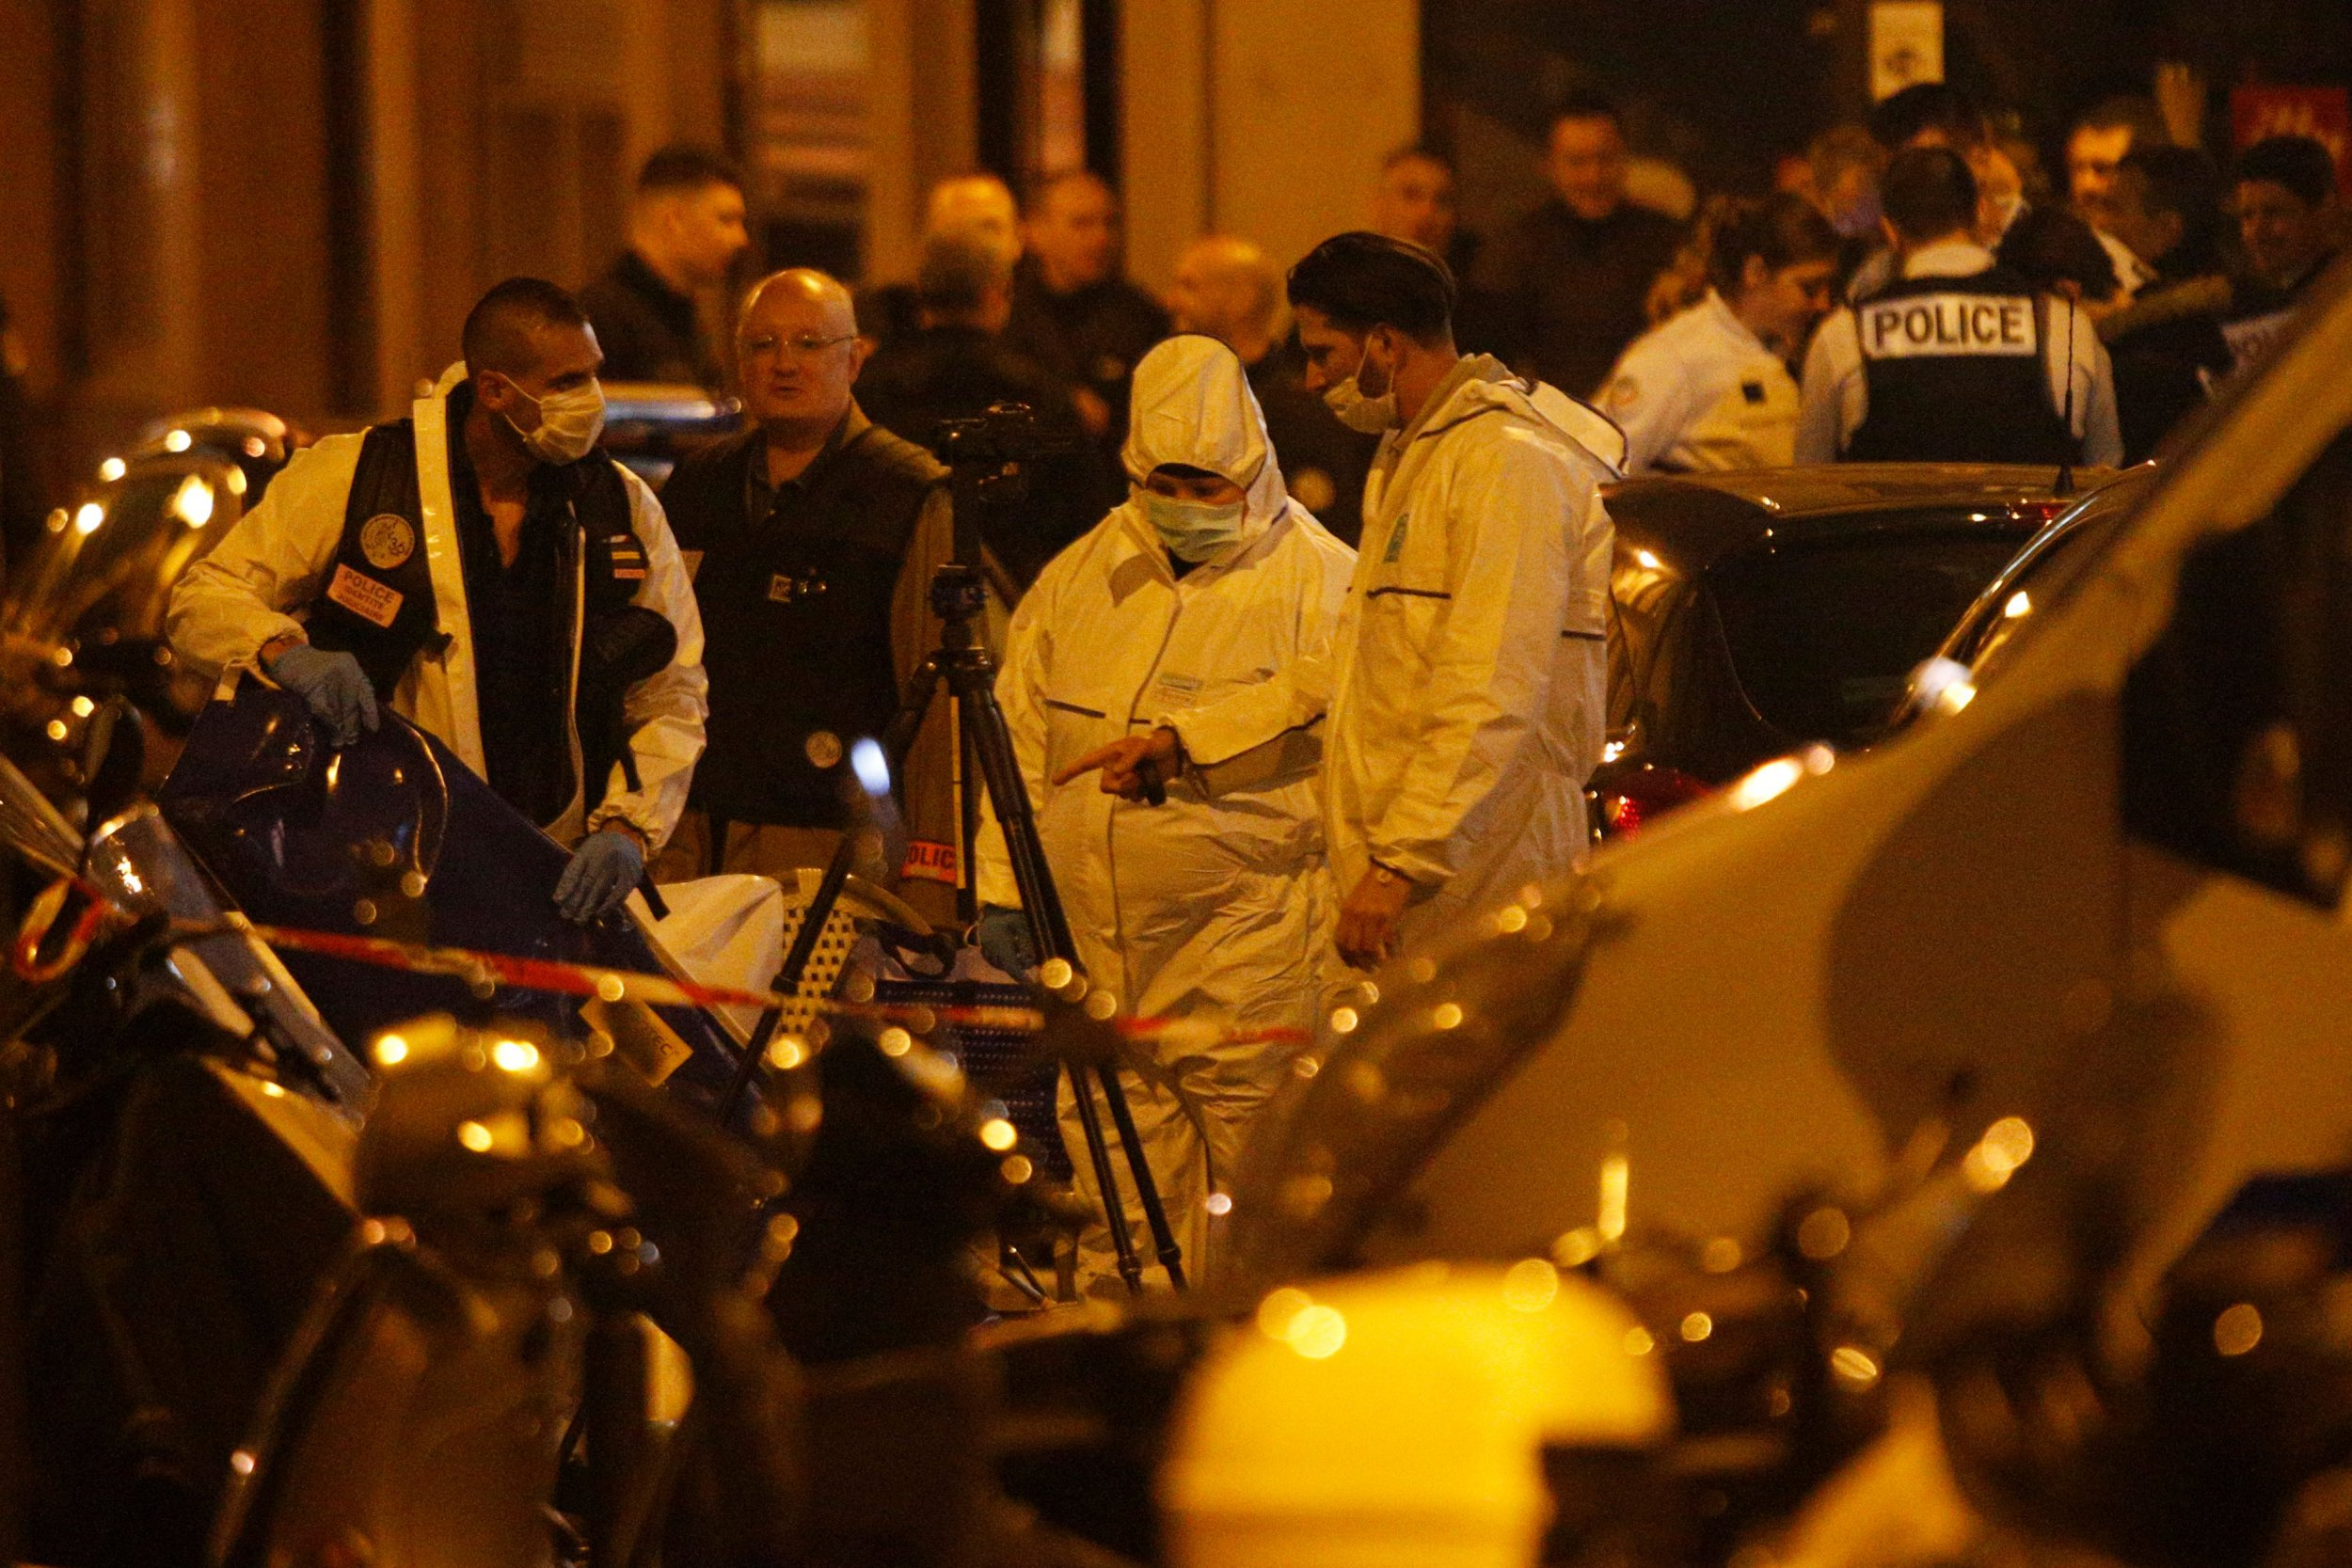 """Forensic officers and French policemen stand in Monsigny street in Paris centre after one person was killed and several injured by a man armed with a knife, who was shot dead by police in Paris on May 12, 2018. - The attack took place near the city's main opera house. Police indicated that the attacker had been """"overcome"""" and his motives are unknown. The man attacked five people with a knife, one of whom died, police said. Two were in serious condition and all the victims are in hospital. (Photo by Geoffroy VAN DER HASSELT / AFP) (Photo credit should read GEOFFROY VAN DER HASSELT/AFP/Getty Images) ***BESTPIX***"""